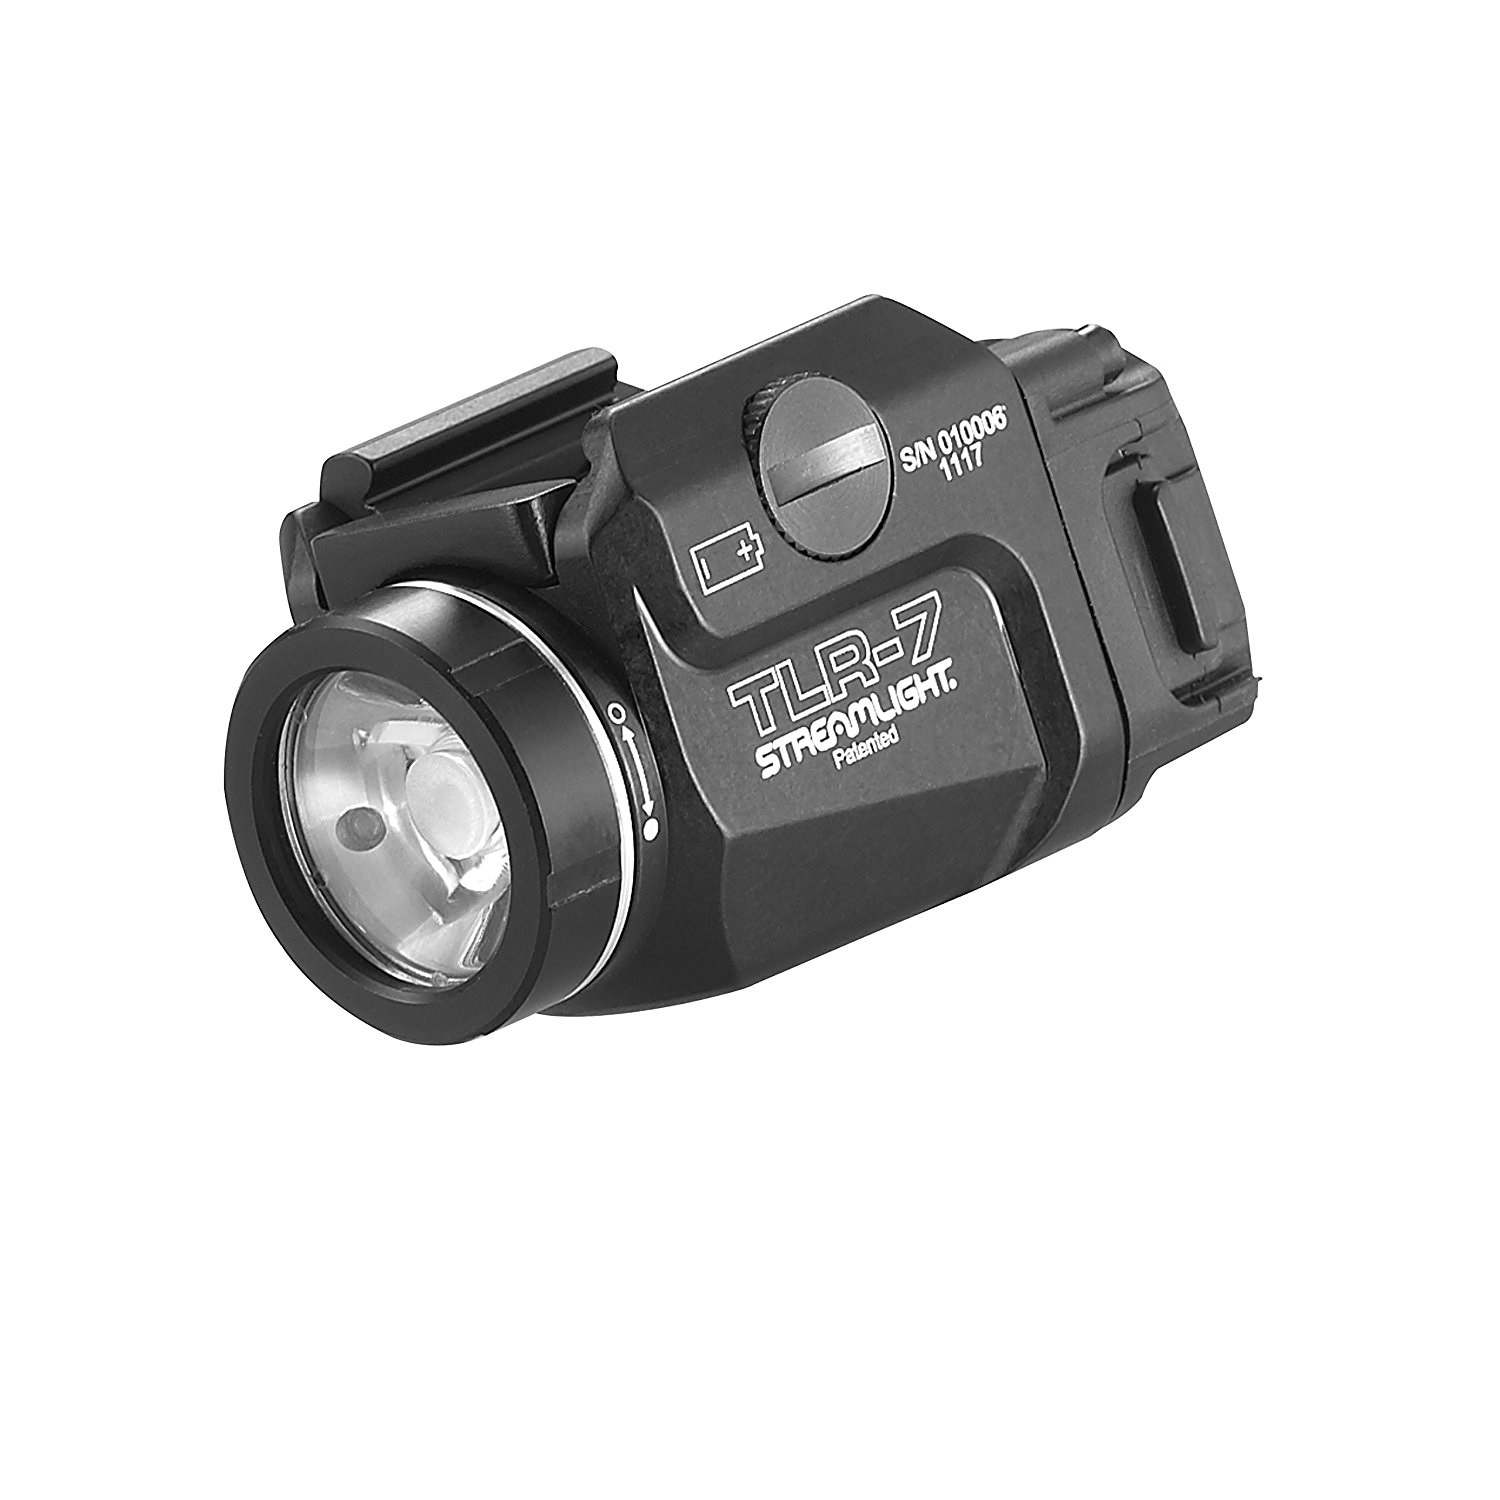 Streamlight TLR-7 Tactical Weapon Light 500 Lumens Black 69420 by Streamlight